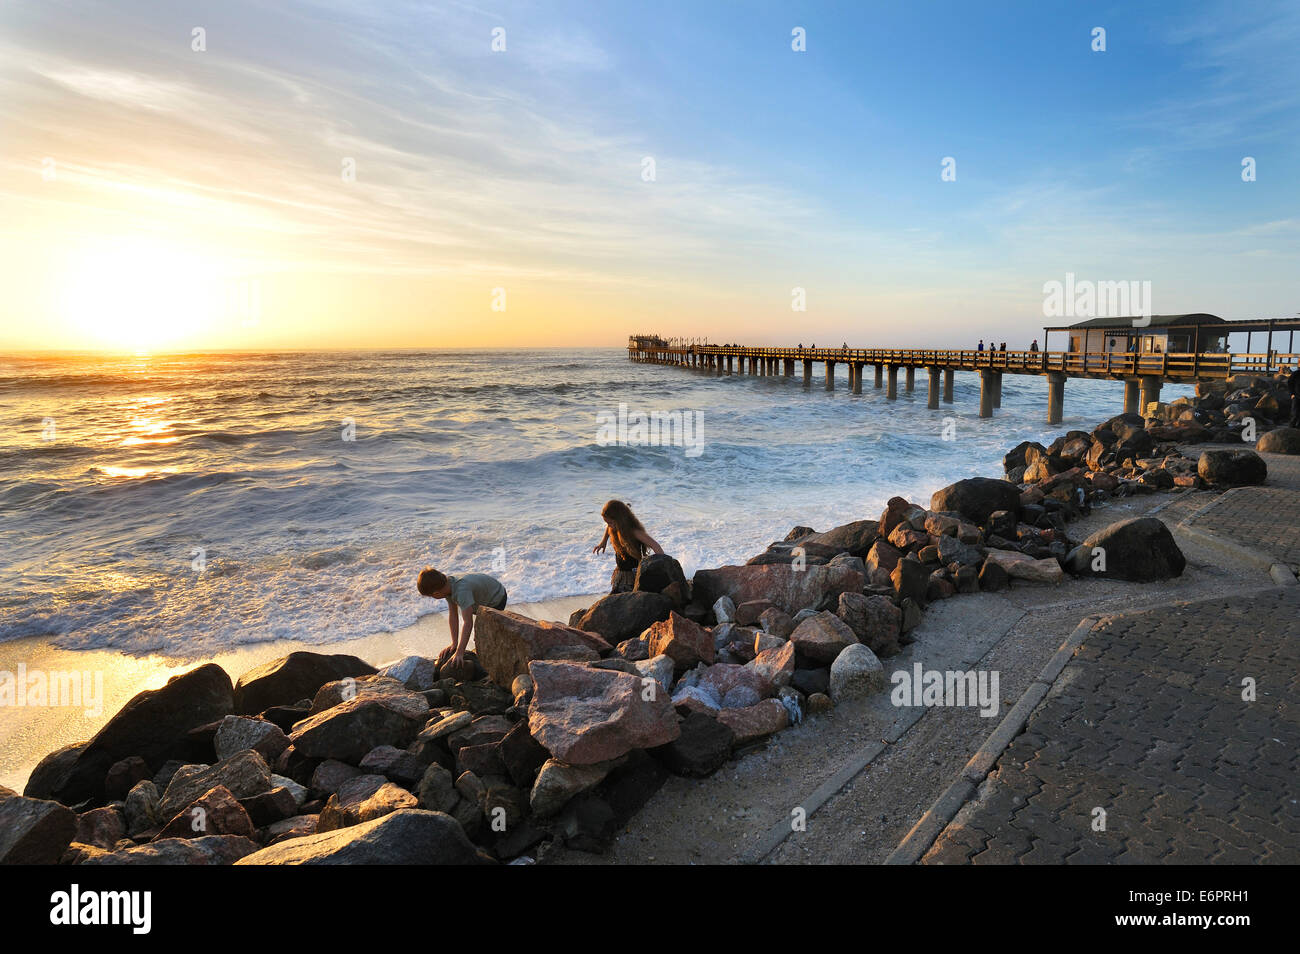 Sunset on the 325 meter long wooden jetty in Swakopmund, Namibia - Stock Image